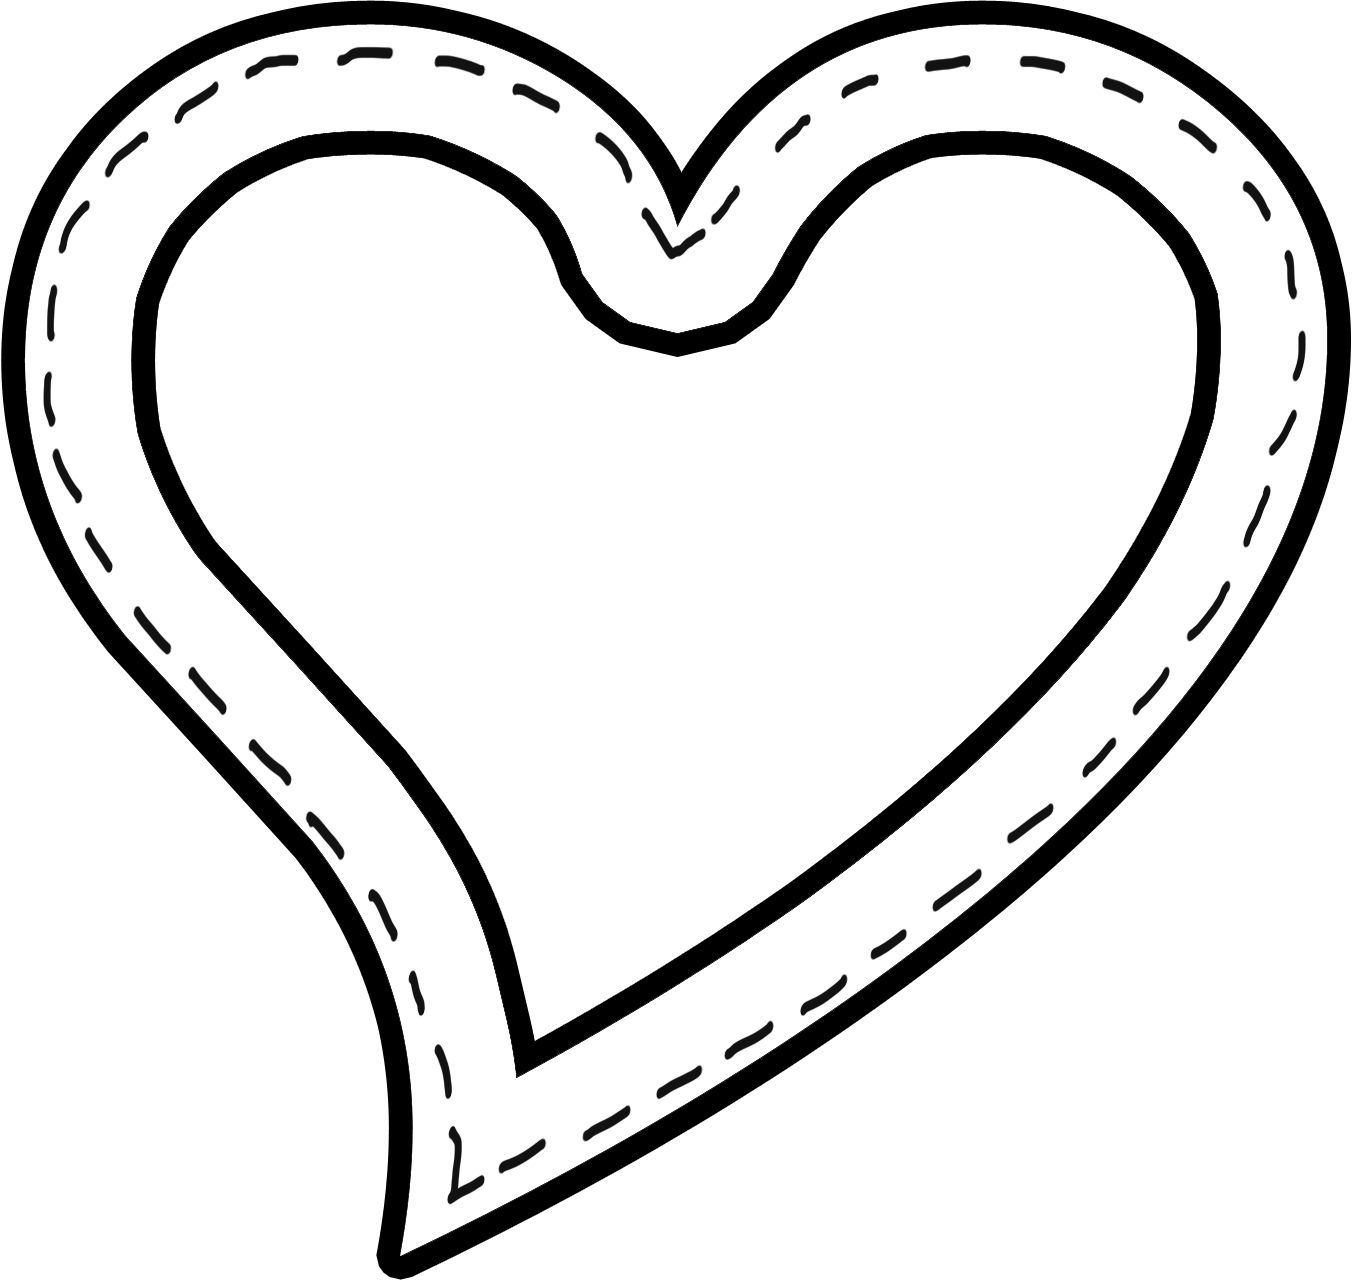 The heart clipart image black and white stock Cute traceable heart clipart image black and white stock